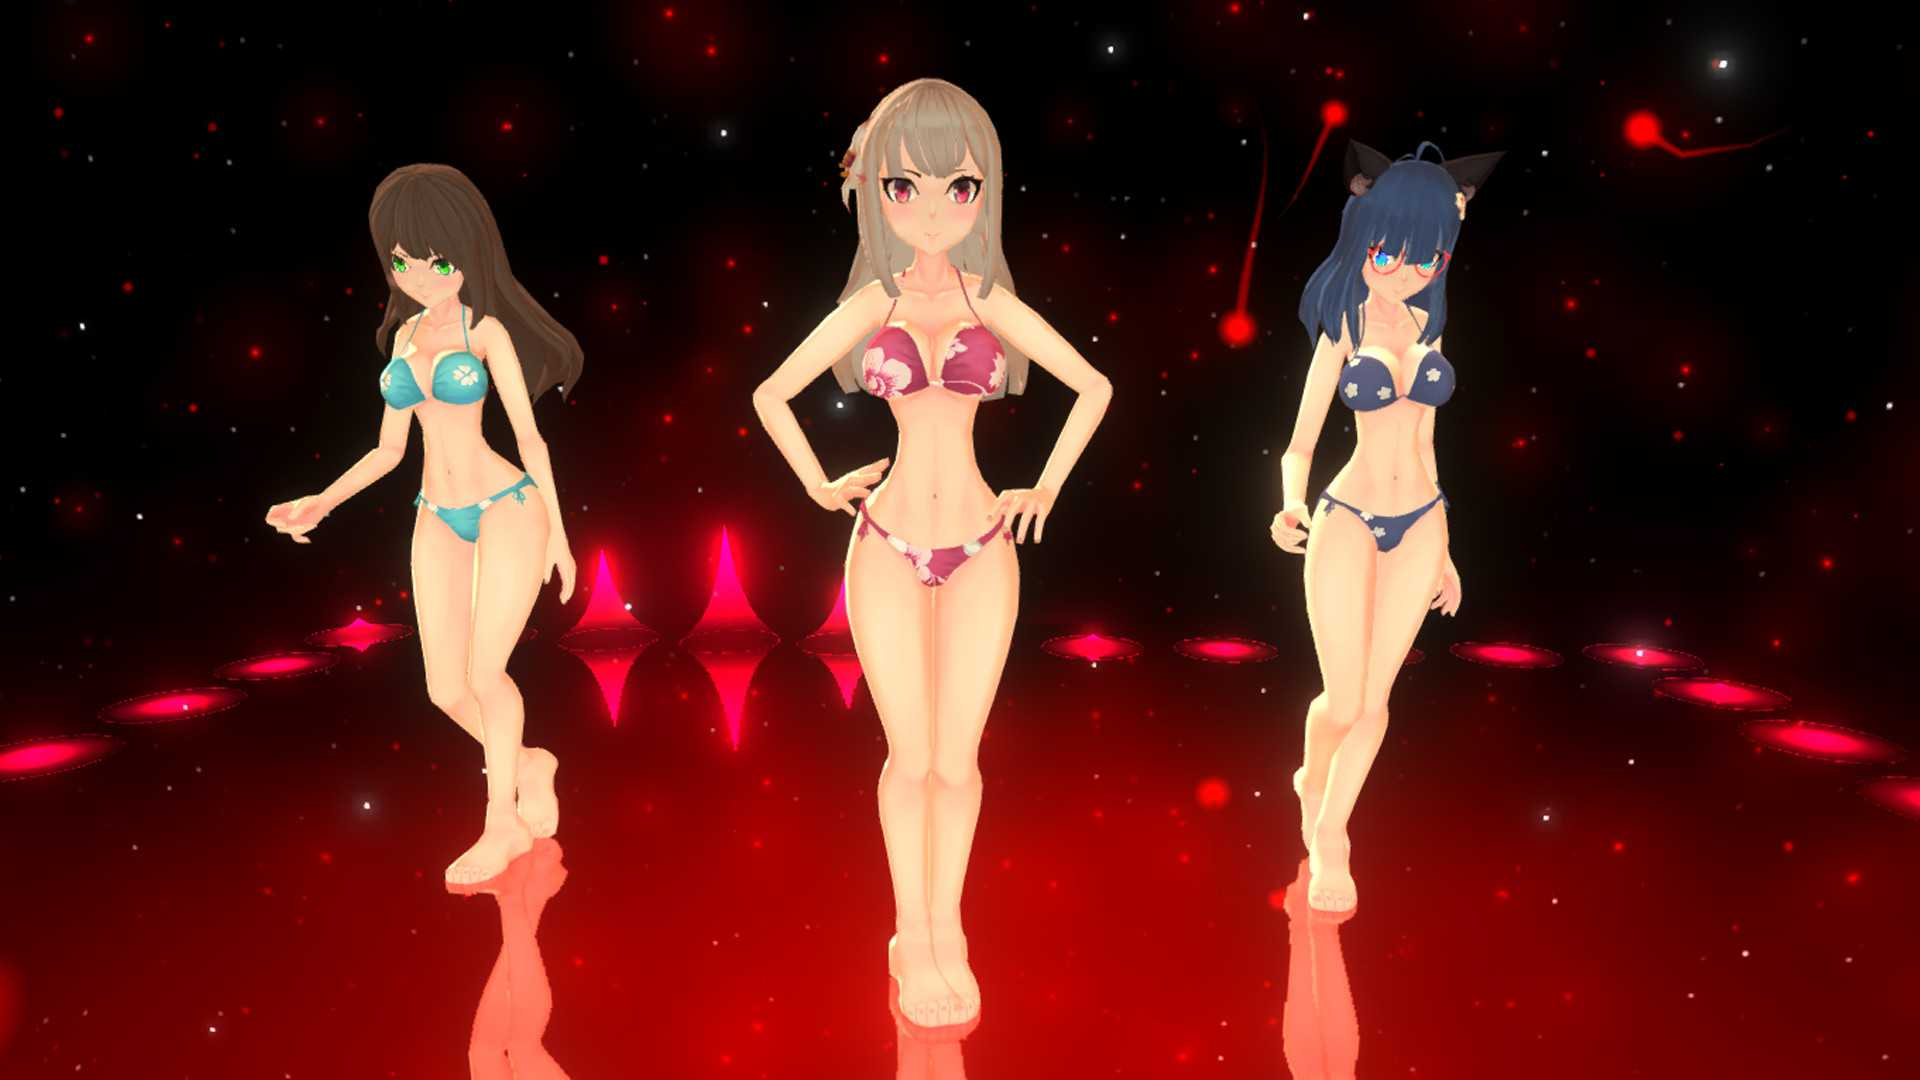 Girls Dance VR